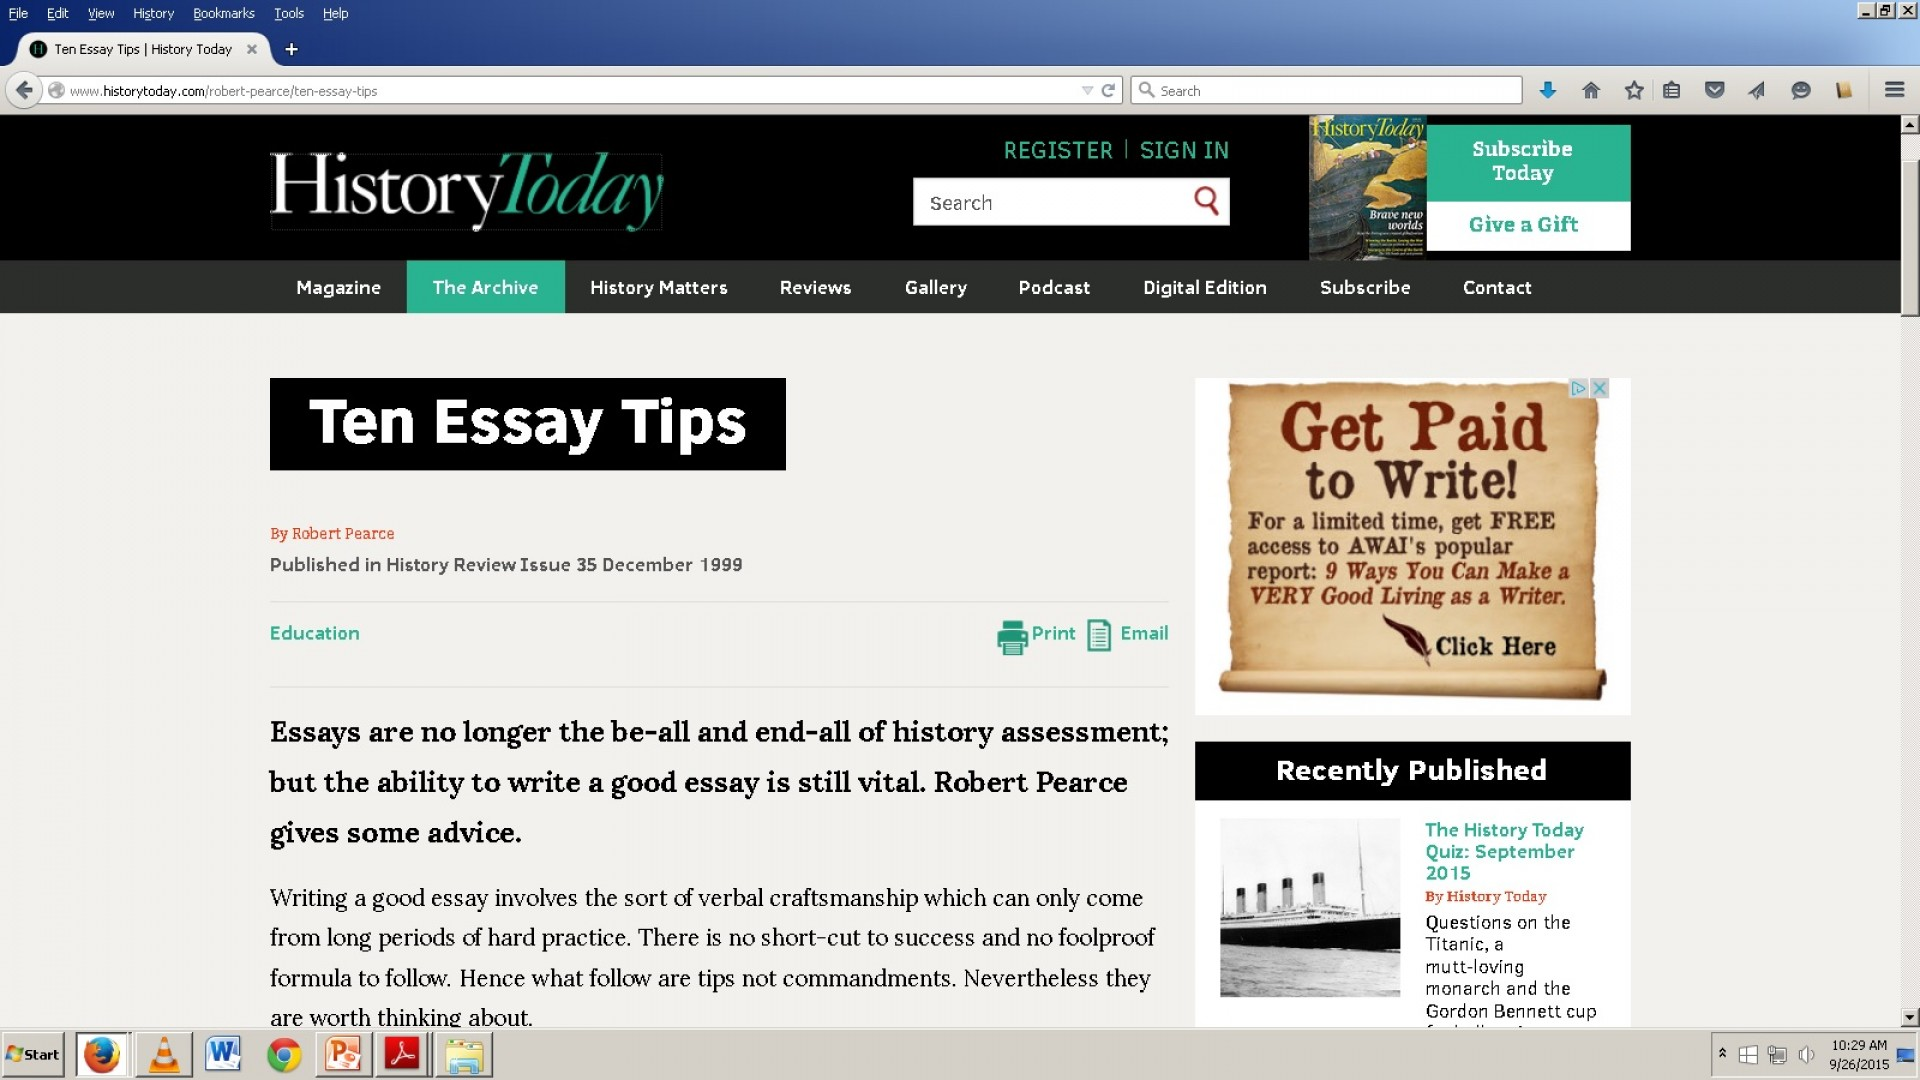 013 Essay Example Top Writing Service Websites Pay For Ten Org Stupendous Reviews Essay.net 1920